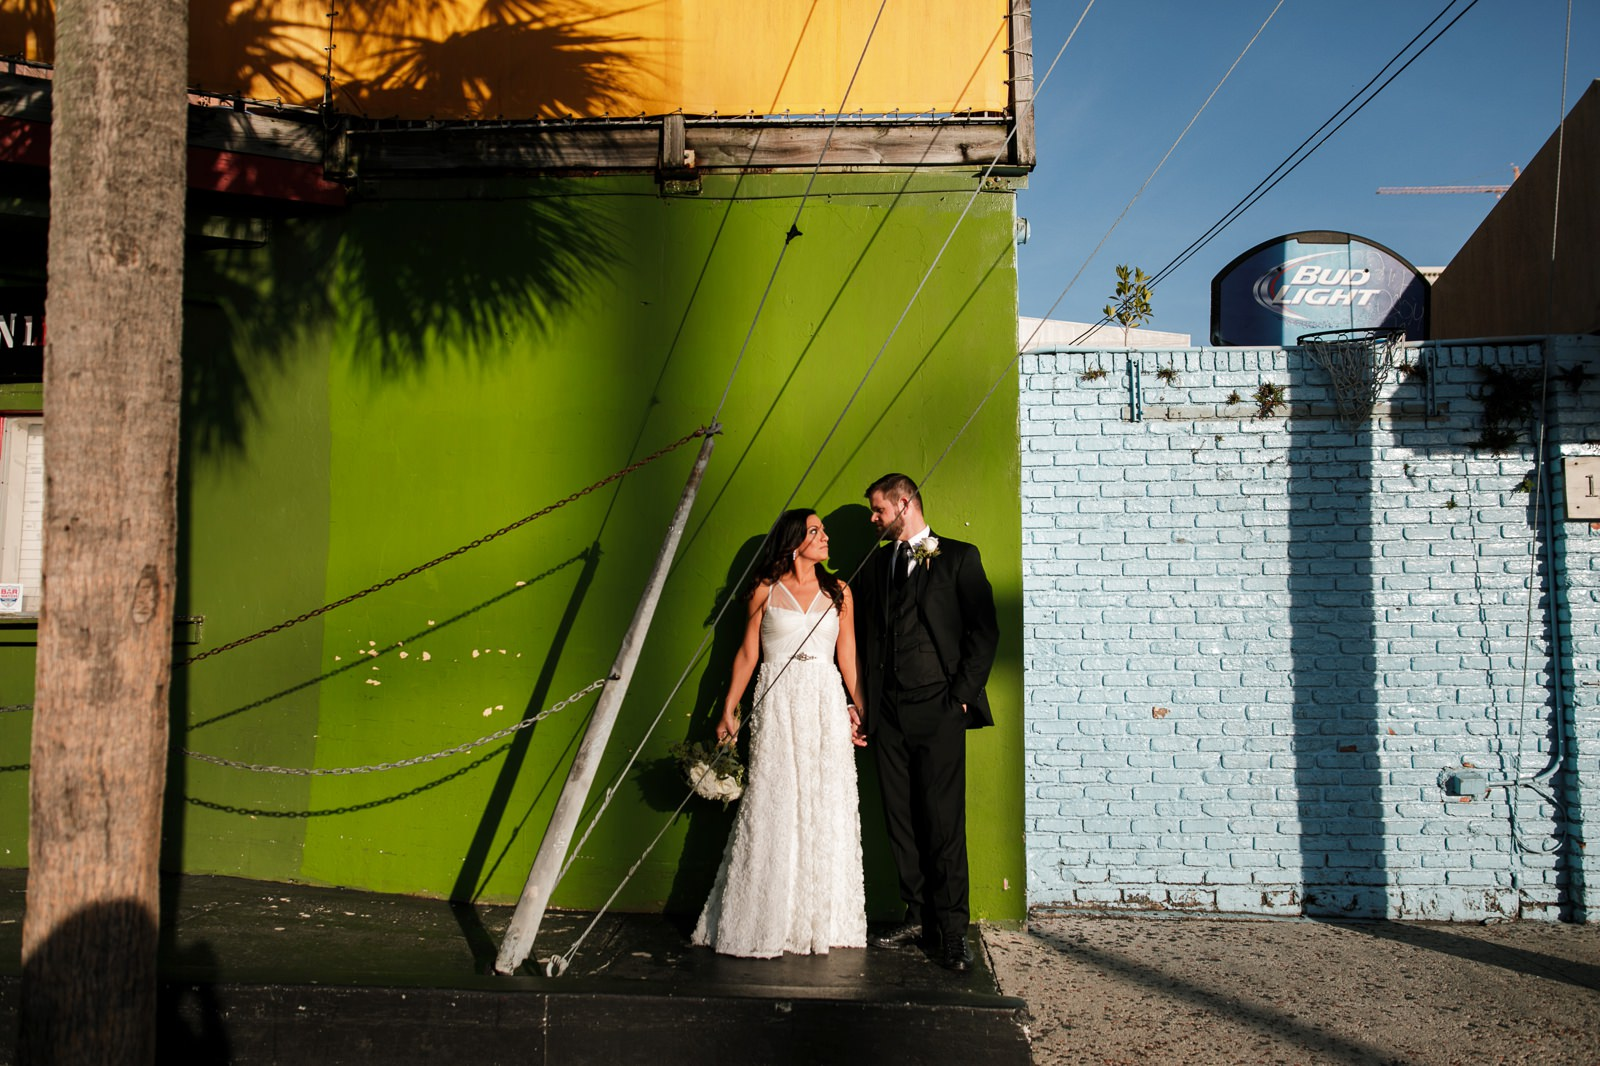 Stache-Wedding-Photographer-Deena-Phil-Fort-Lauderdale